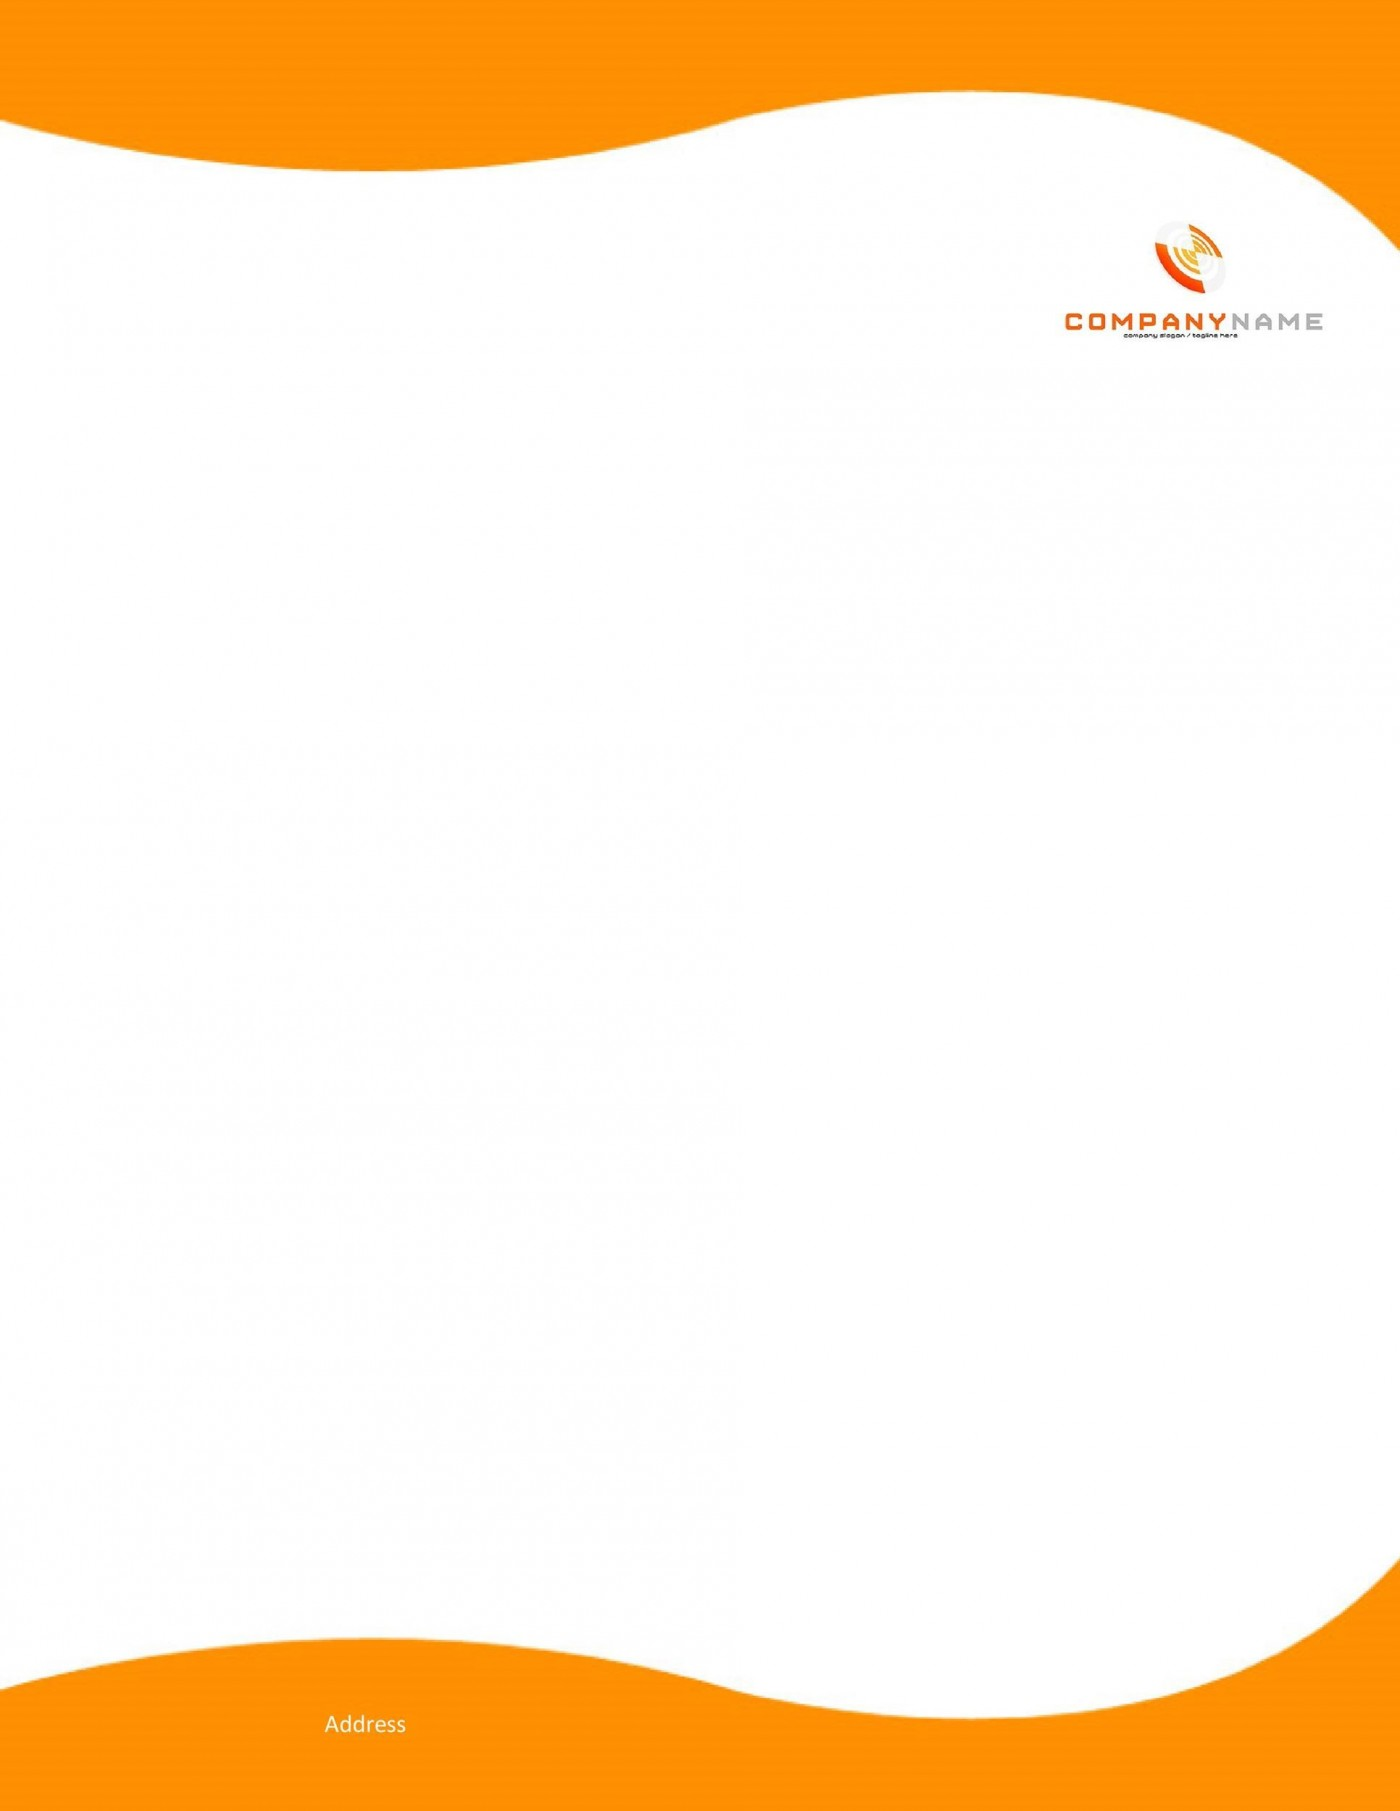 007 Stupendou Letterhead Template Free Download Word Concept  Microsoft Format In Personal Red1400